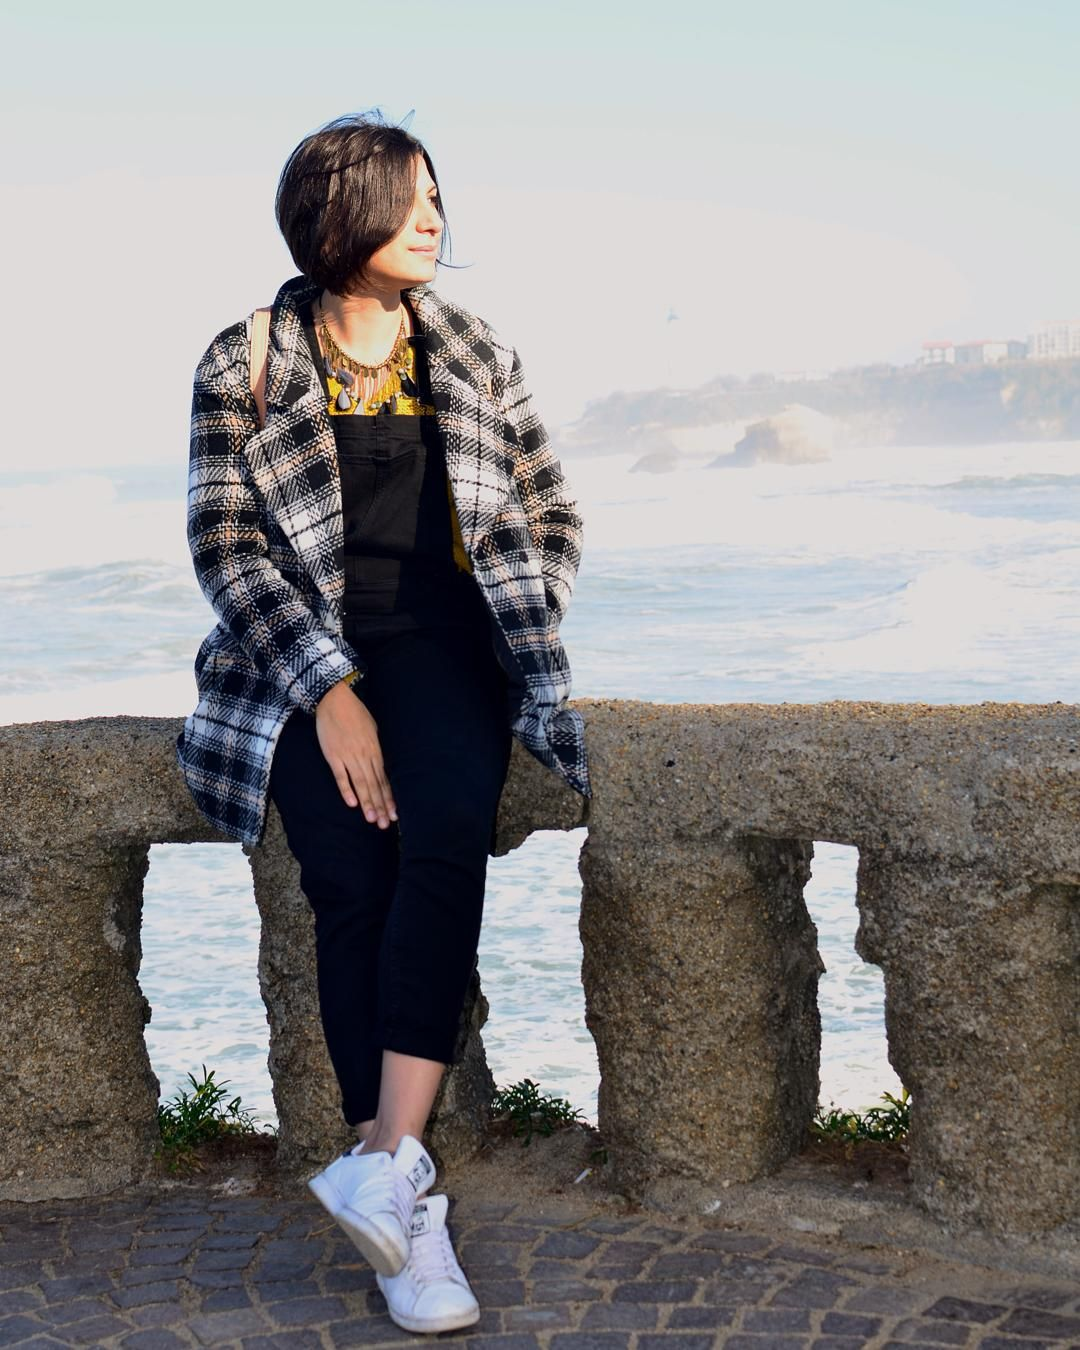 Look en ligne sur le blog ! :)   #look #lookbook #ootd #outfitoftheday #outfit #tenue #tenuedujour #instastyle #instalook #picoftheday #fashionblogger #frenchblogger #manteau #coat #tartan #decembre2015 #hiverestival #salopette #biarritz #paysbasque #vacances #holiday #followme #974 #lareunion #fashion #mode #moutarde by mademoisellechipek